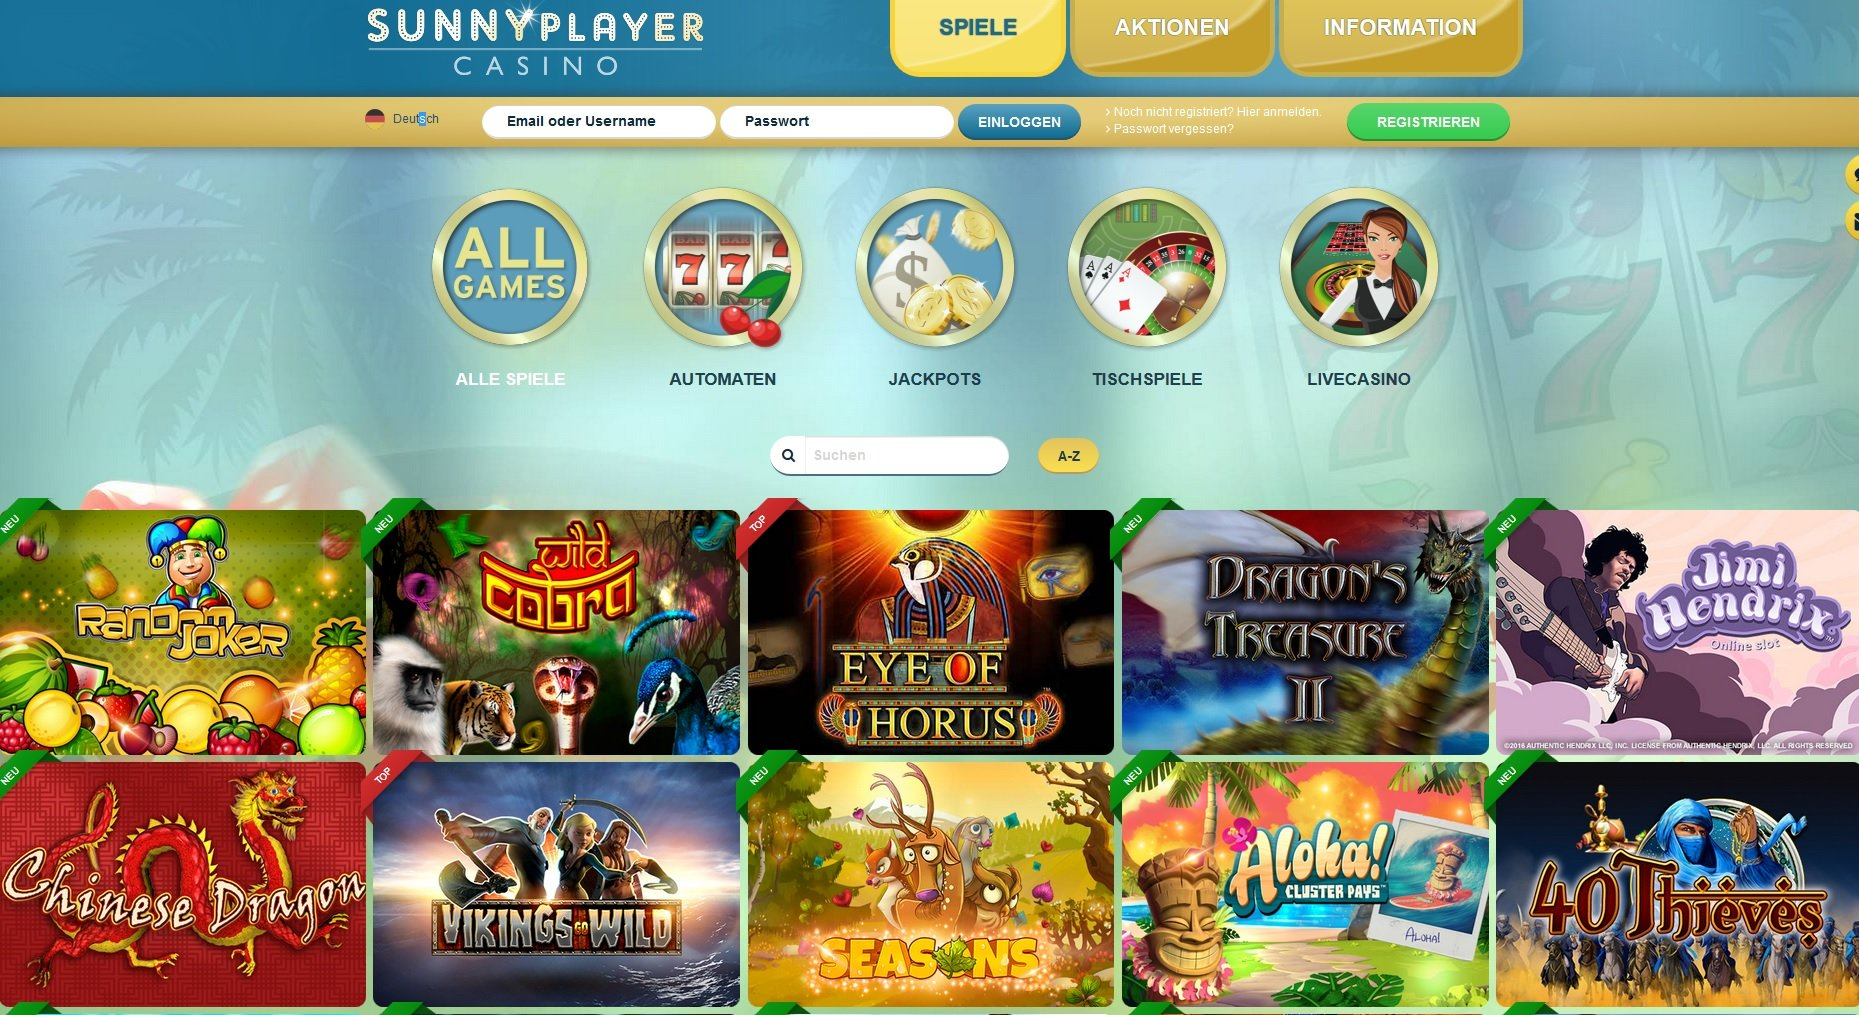 Screenshot-of-Sunny-Player-Casino-Games-Page